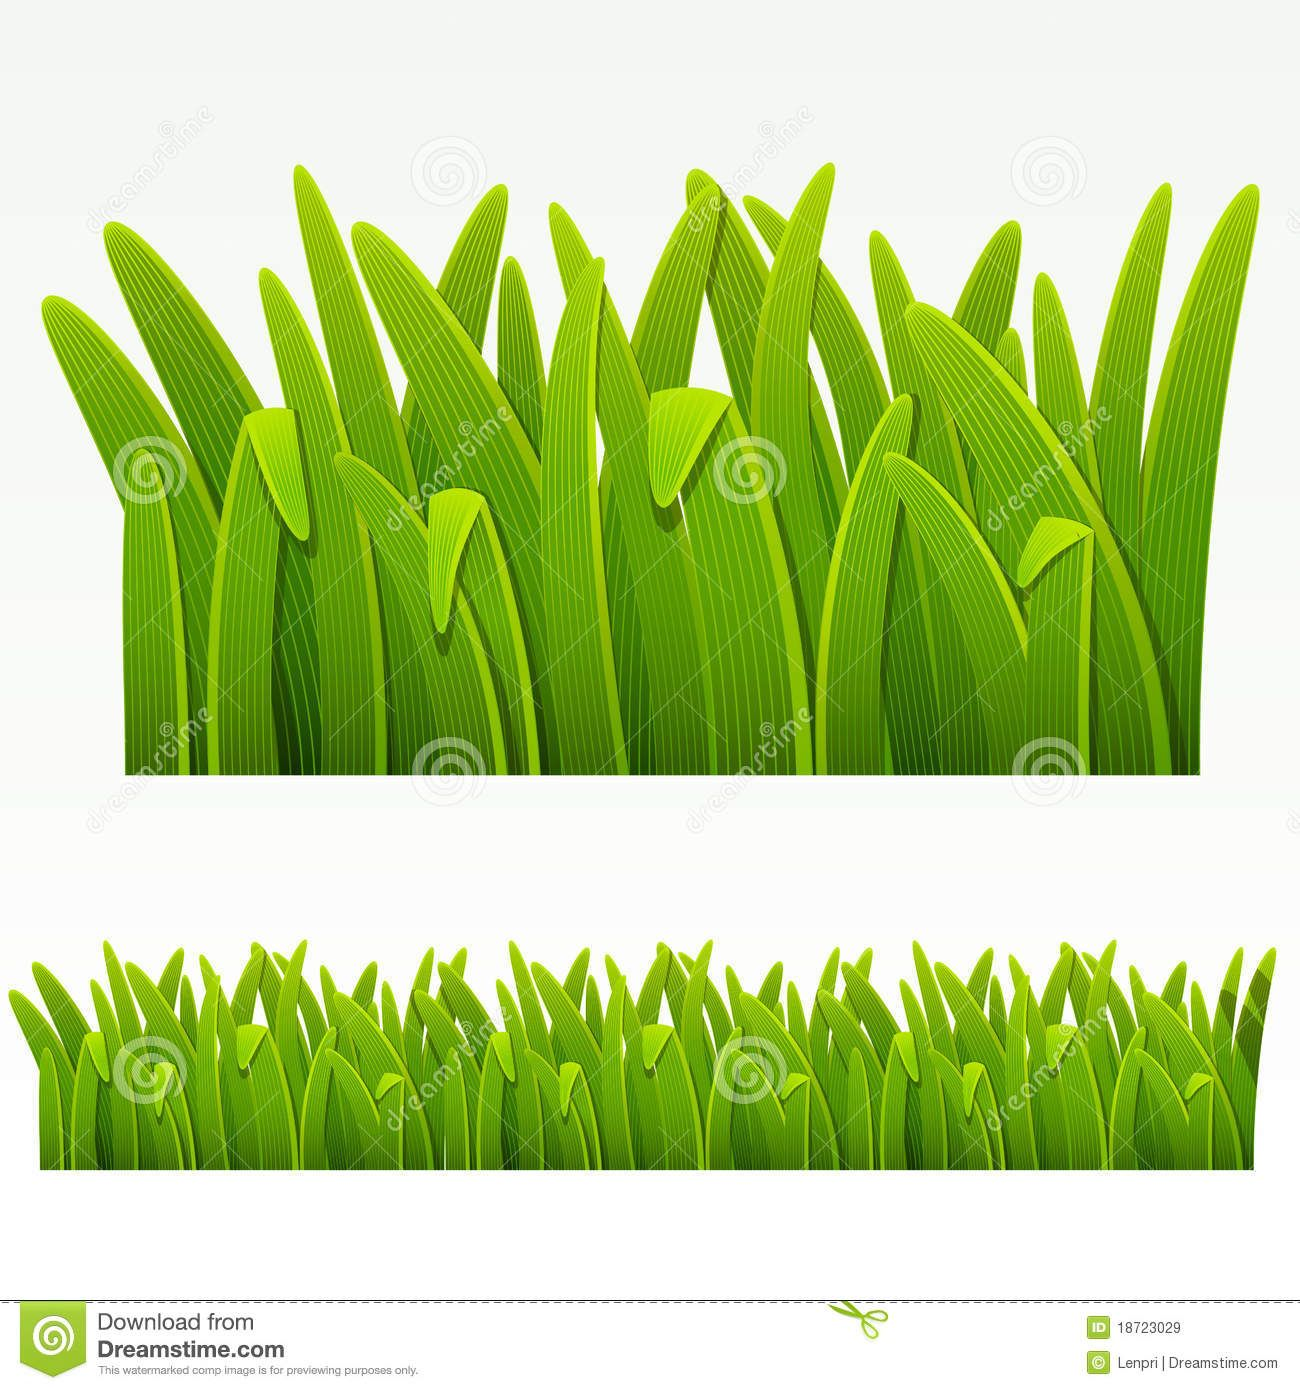 Free Outdoors Garden Cliparts, Download Free Clip Art, Free Clip Art on  Clipart Library